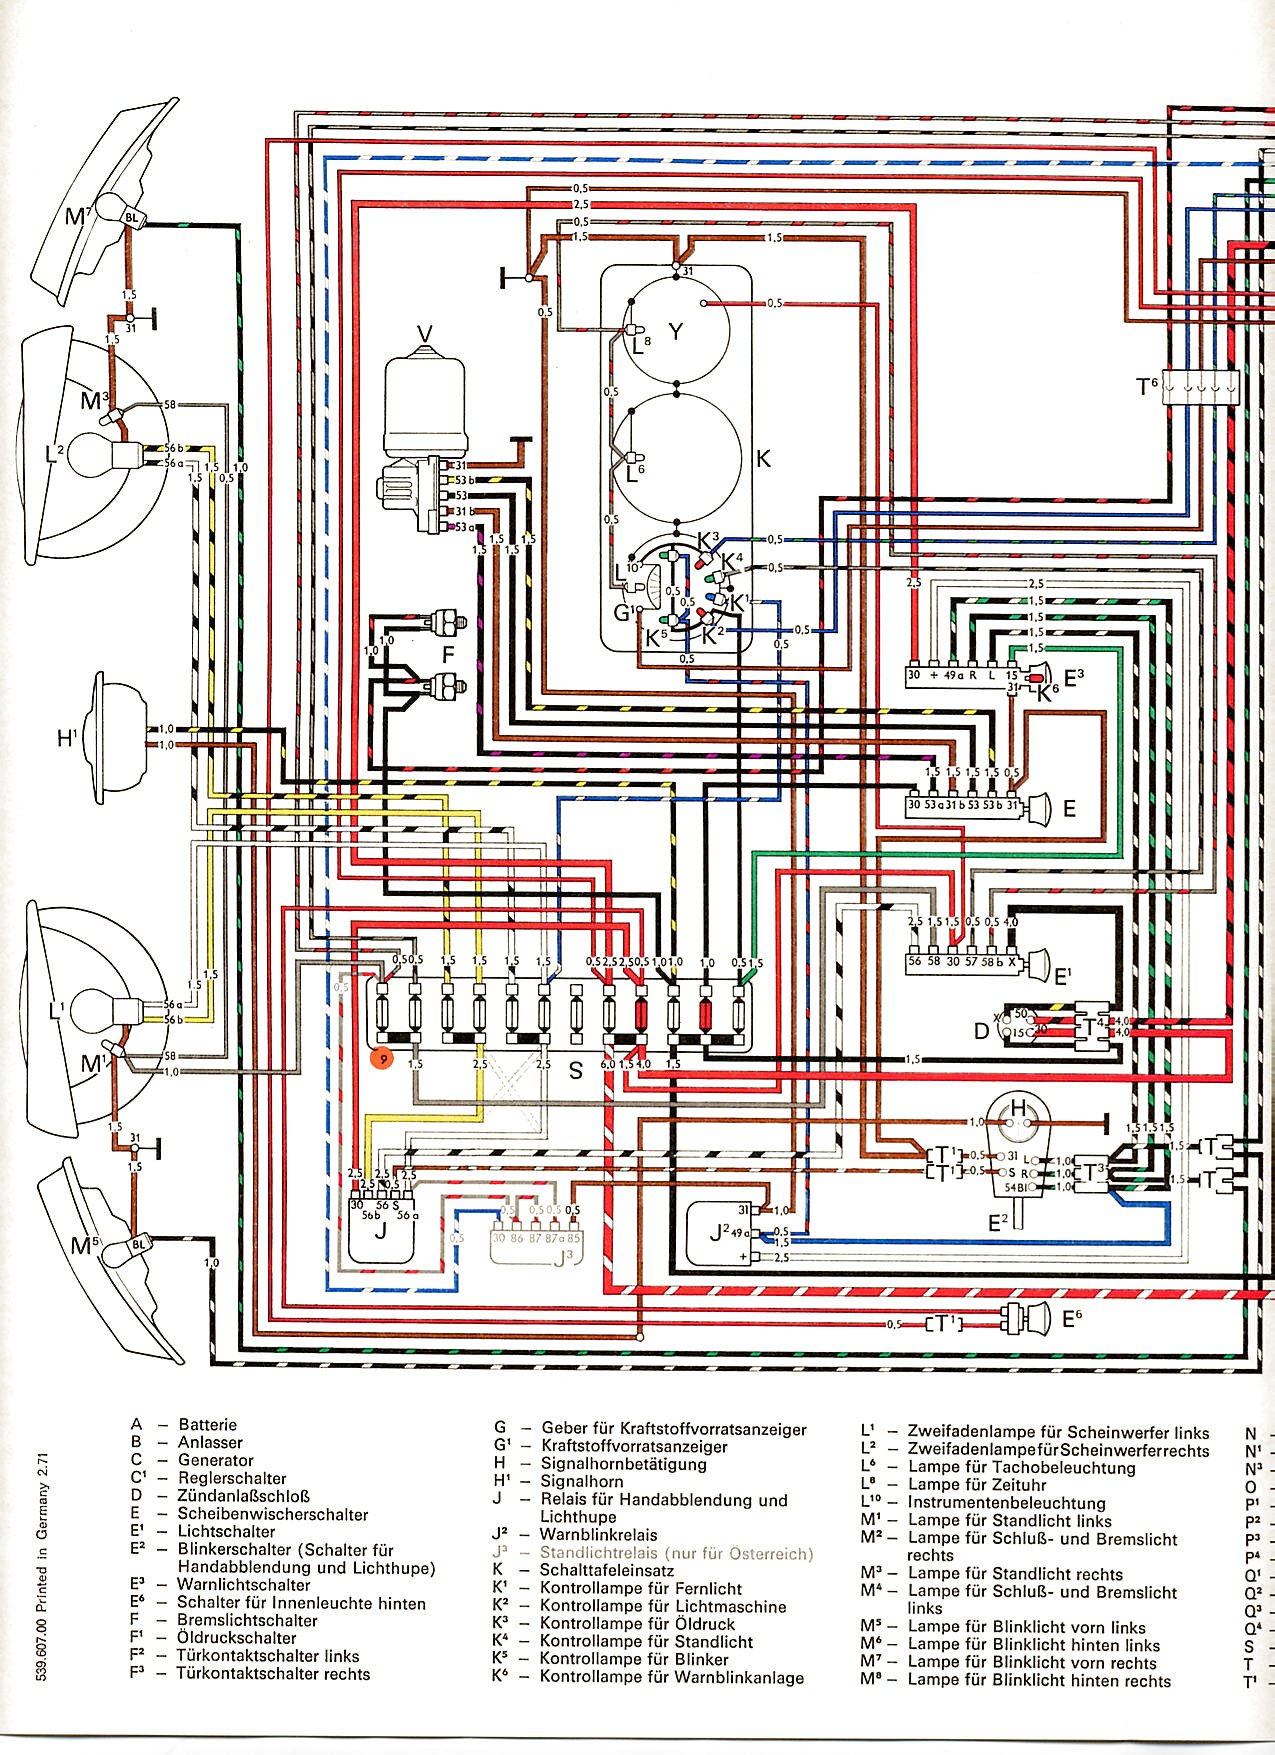 Vw Bus And Other Wiring Diagrams 2008 Beetle Free Download Diagram Com